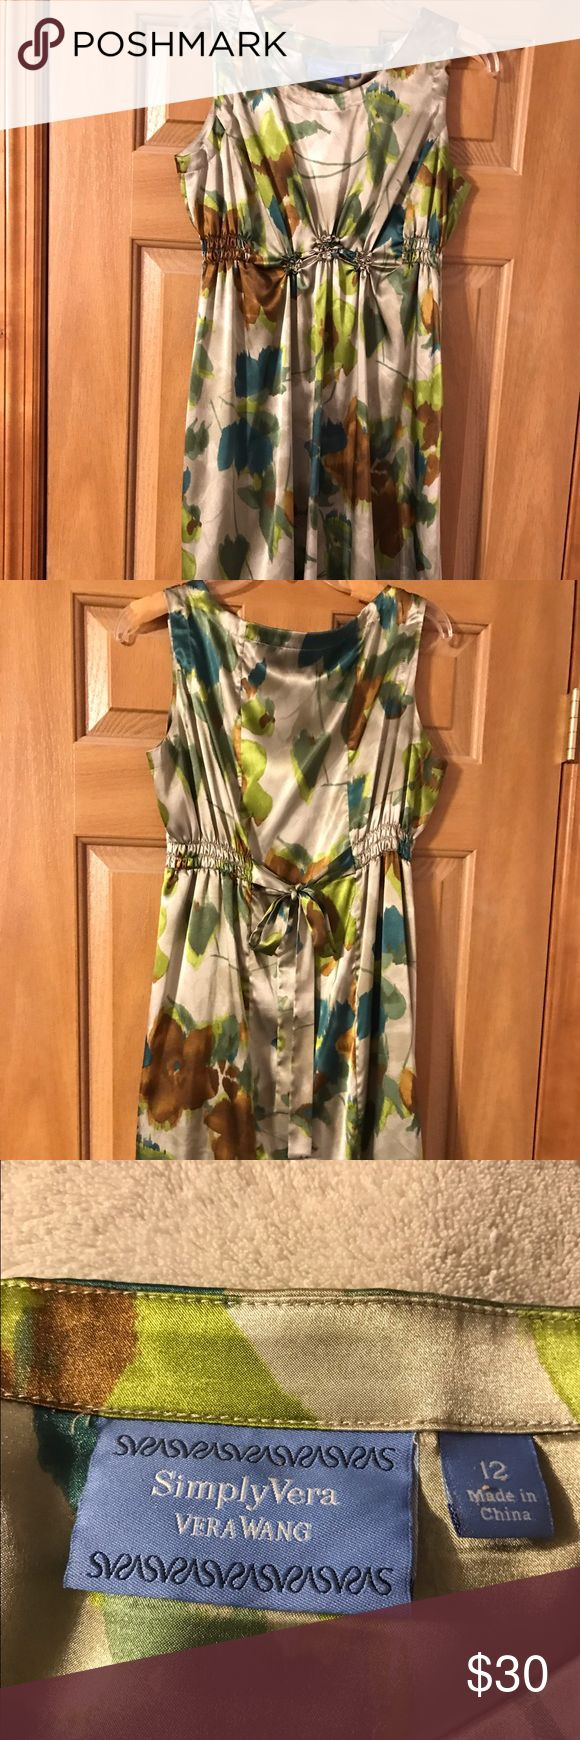 Simply Vera Vera Wang Dress like new Simply Vera Vera Wang dress -  like new only worn once.  Silky and flown dress size 12 - comes just above the knee Simply Vera Vera Wang Dresses